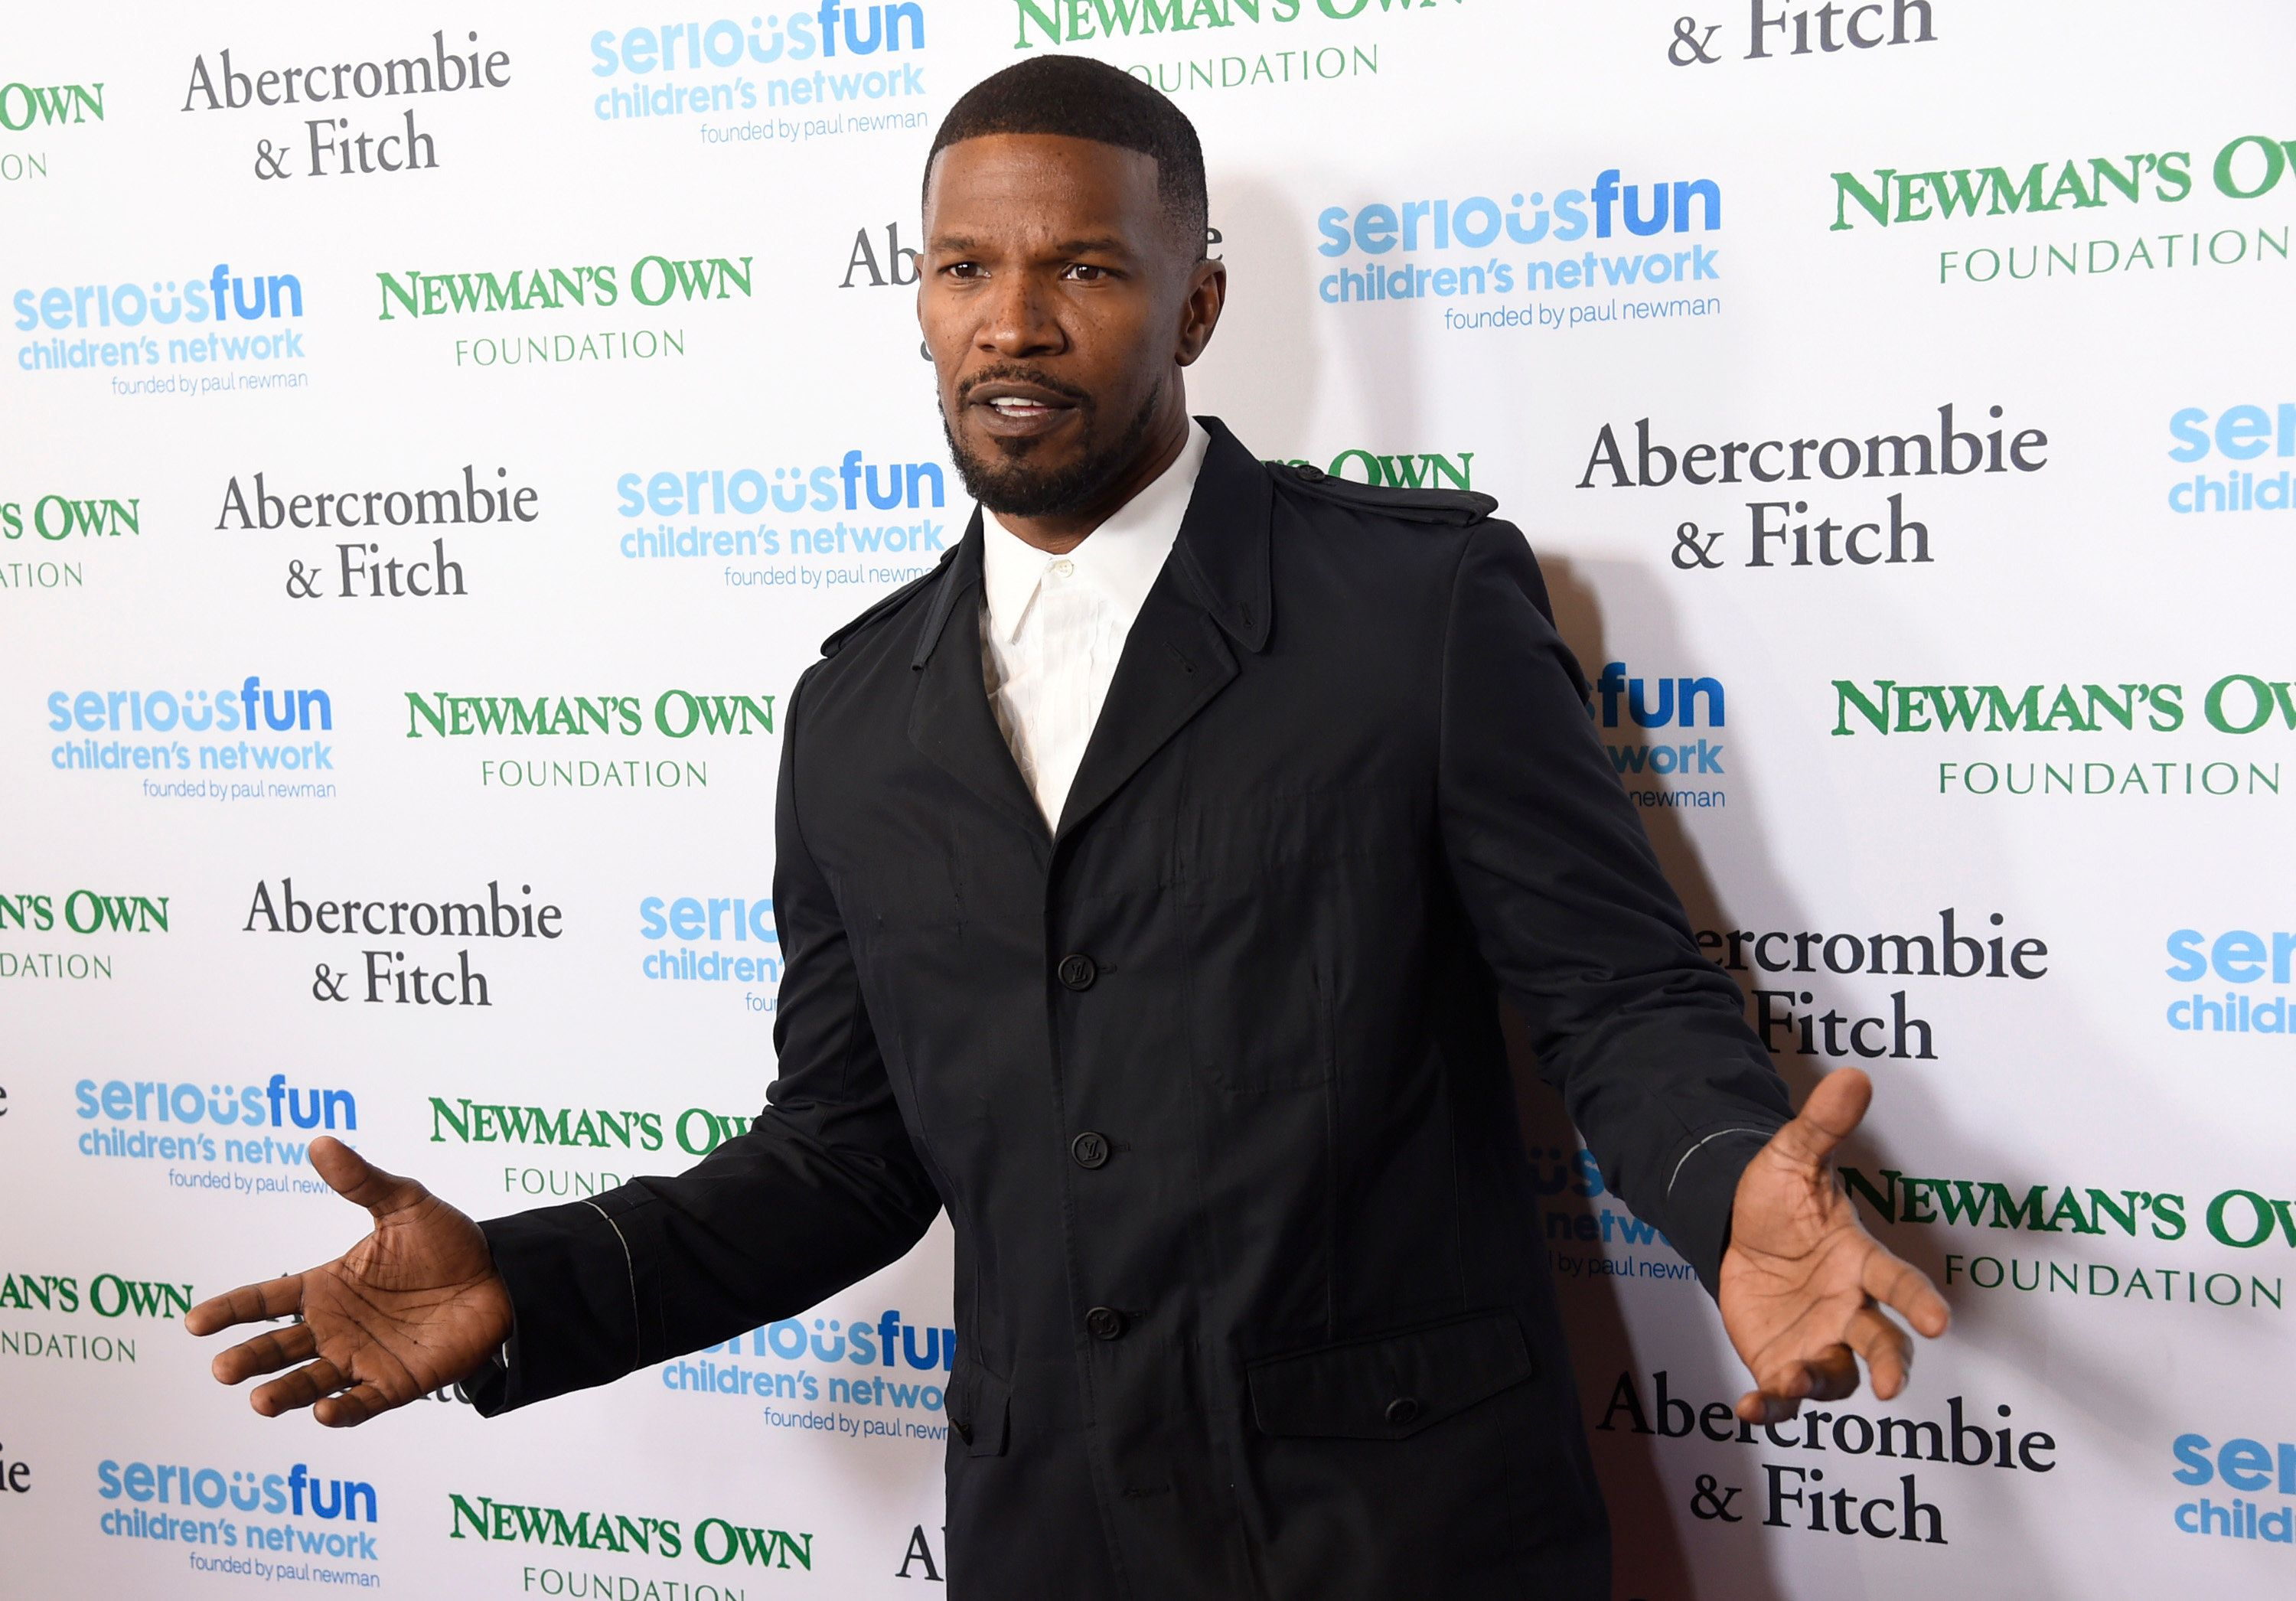 Jamie Foxx arrives at the SeriousFun Children's Network event at the Dolby Theatre on Thursday, May 14, 2015, in Los Angeles. (Photo by Chris Pizzello/Invision/AP)